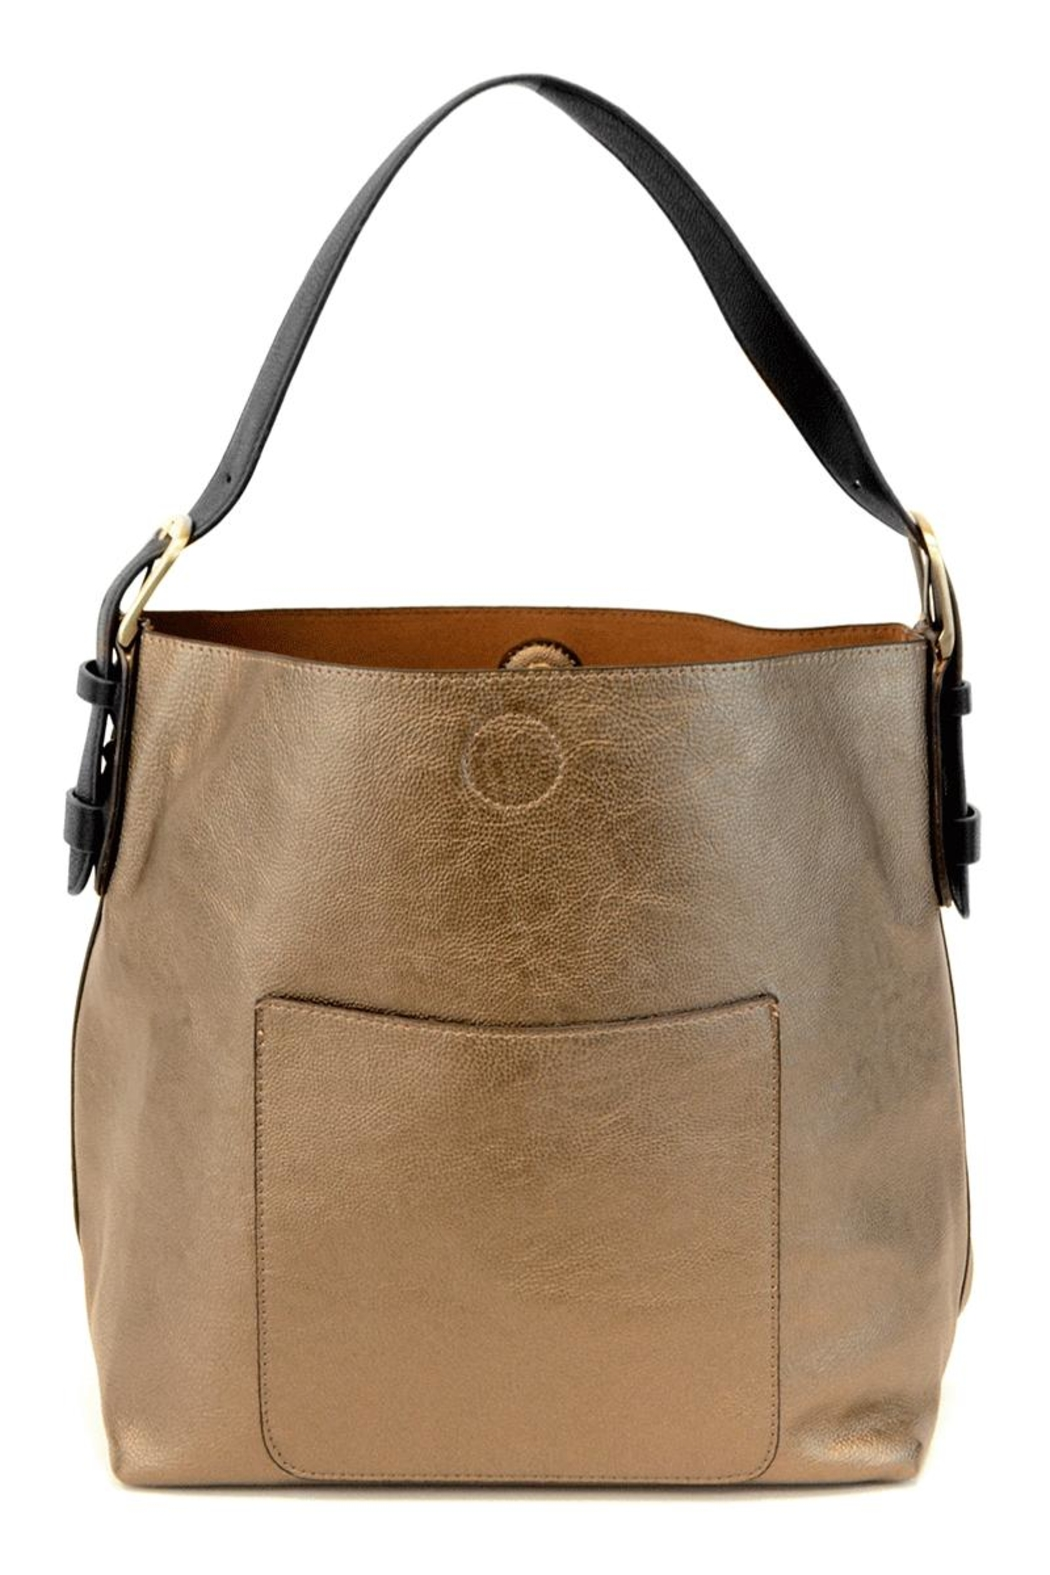 Joy Accessories Bronze Hobo Bag - Main Image